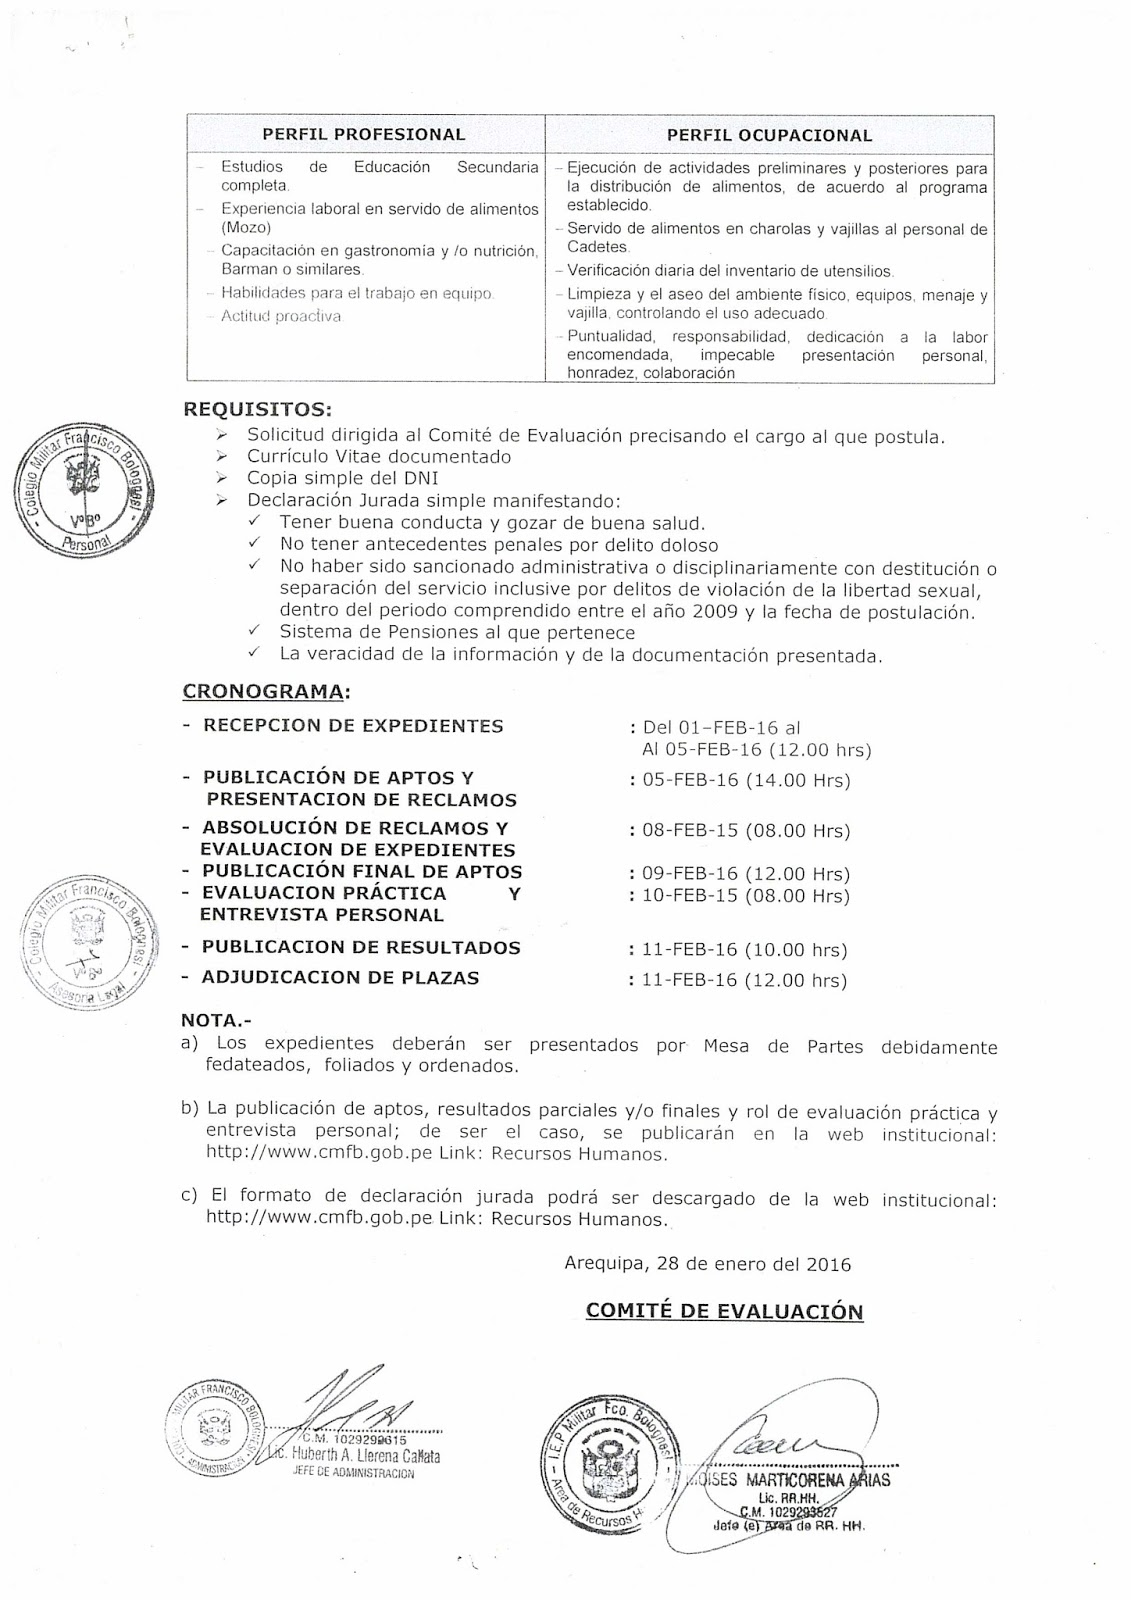 Convocatoria n 001 2016 cmfb noticias m s importantes for Convocatoria de plazas docentes 2016